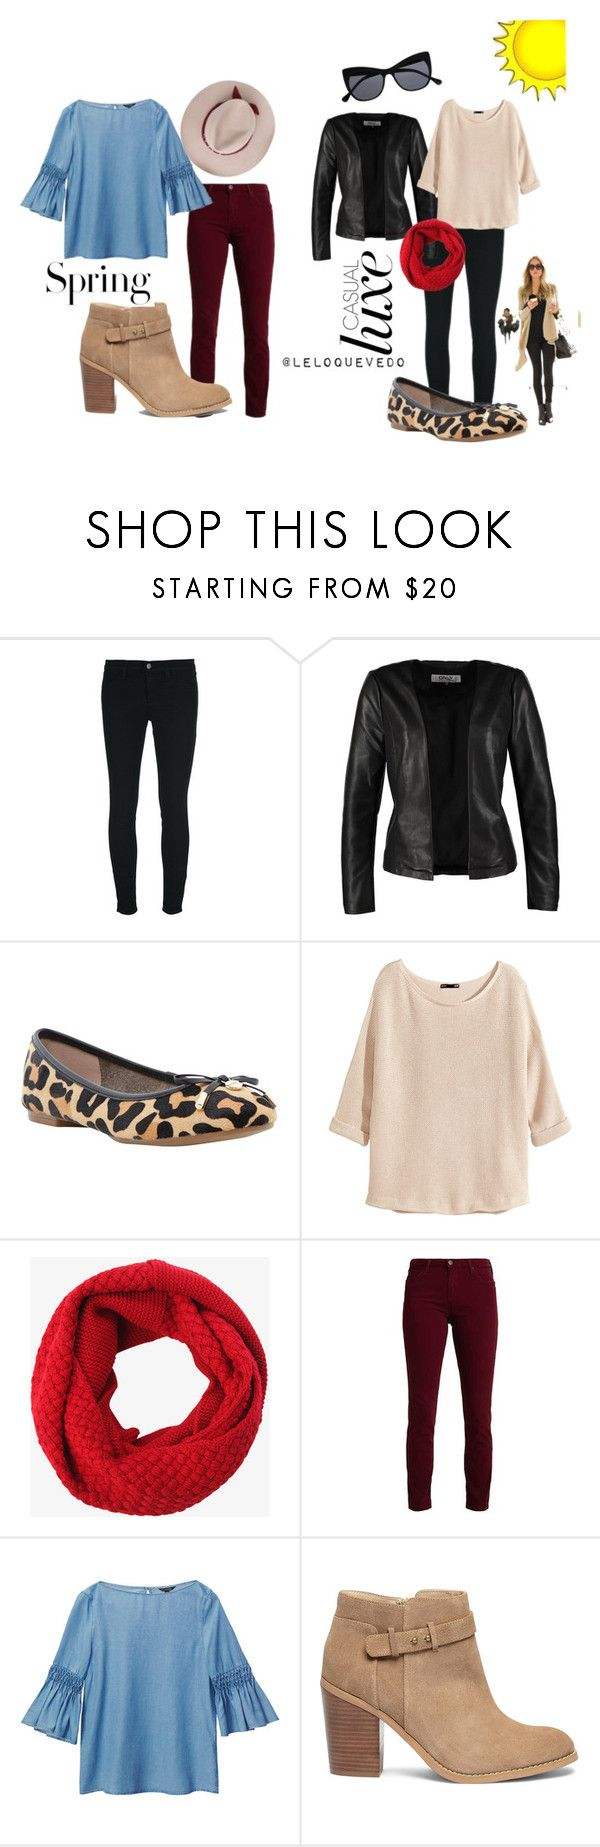 """""""Fiestas patrias Chile ideas"""" by leloquevedo on Polyvore featuring J Brand, ONLY, Dune, Kerr®, H&M, Torrid, Massimo Dutti and Sole Society"""